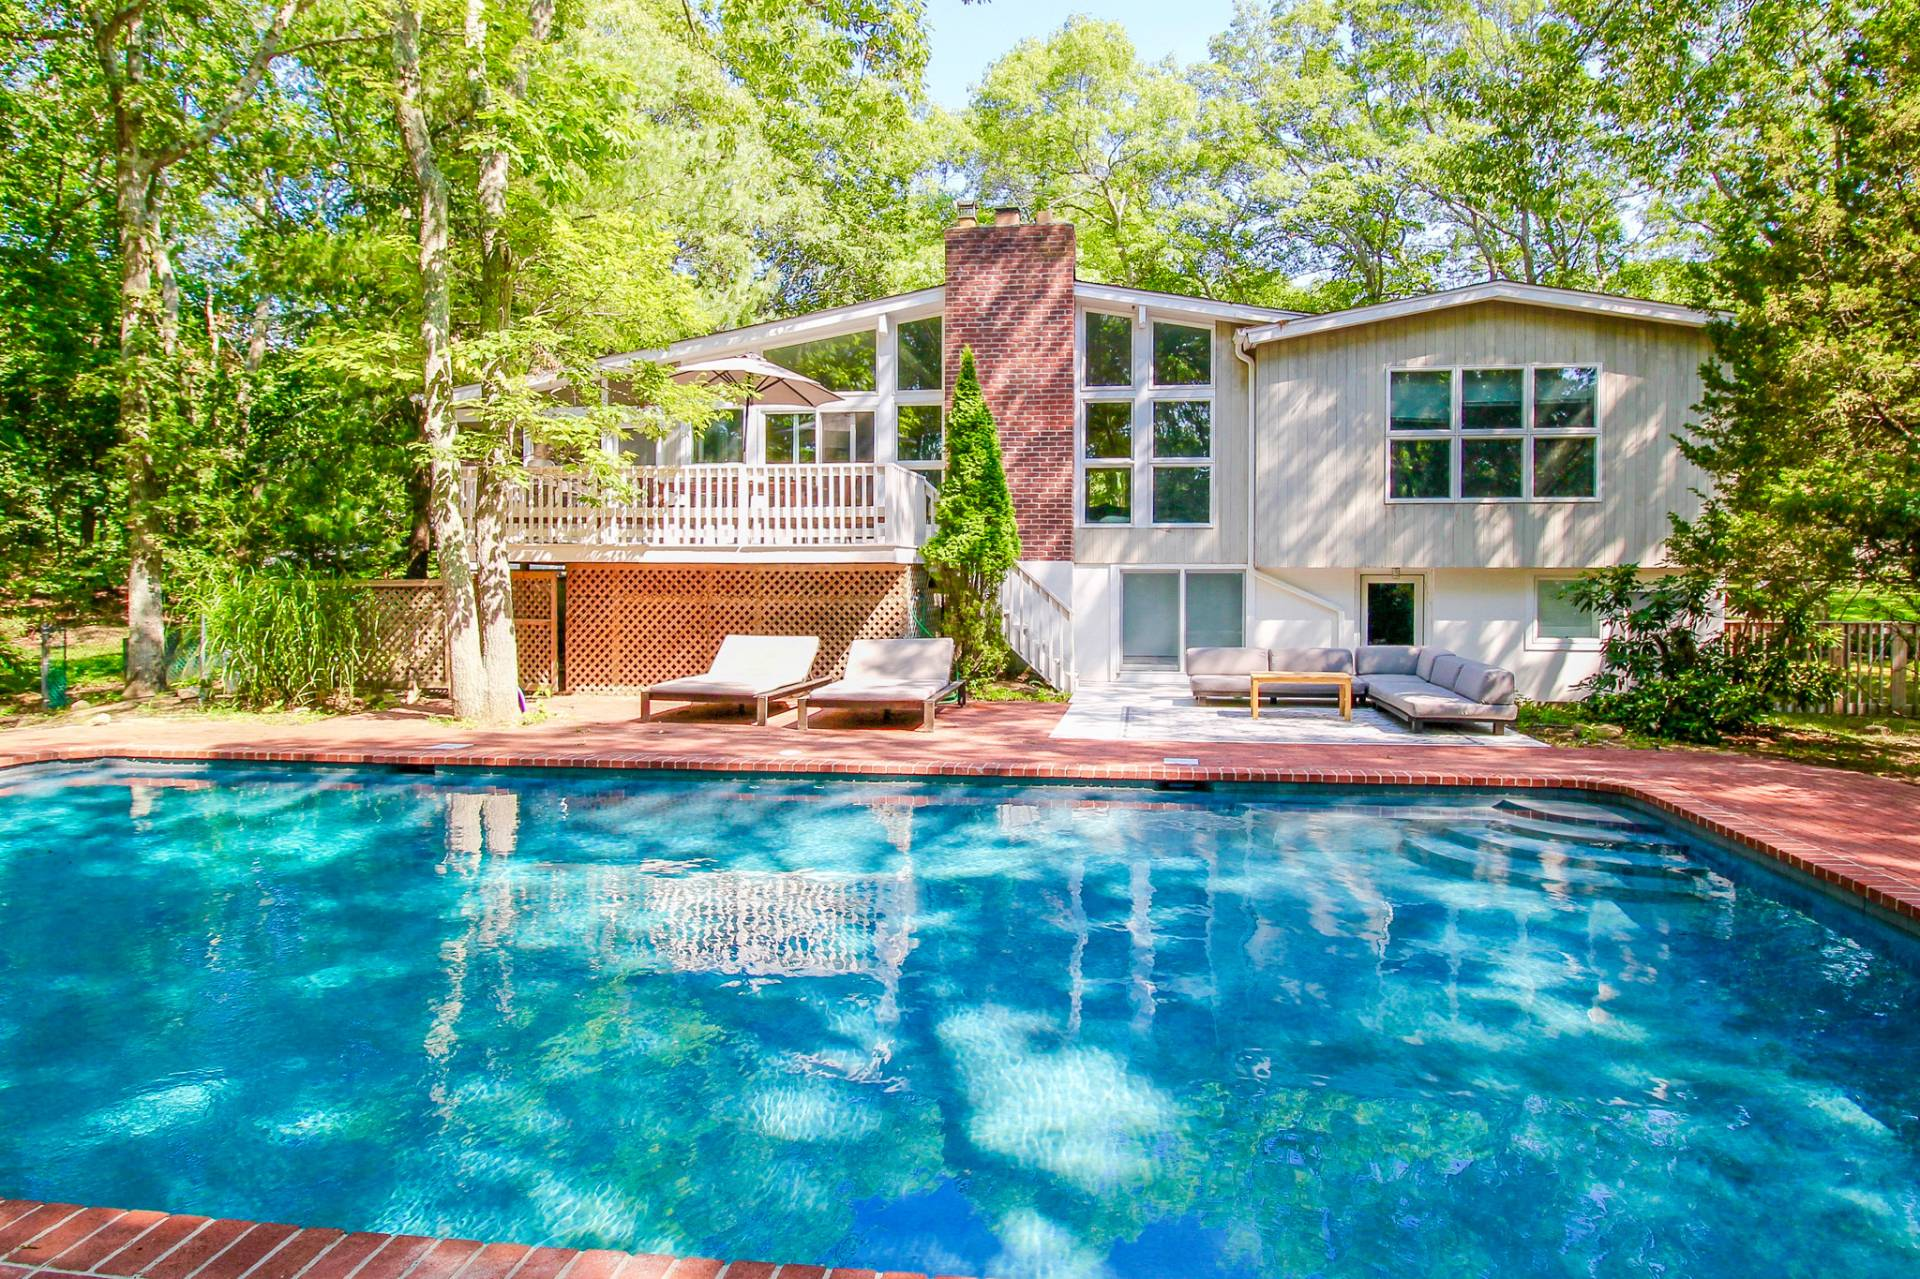 Single Family Home for Sale at Light, Bright And Close To The Beach 15 Cuffee Drive, Sag Harbor, New York